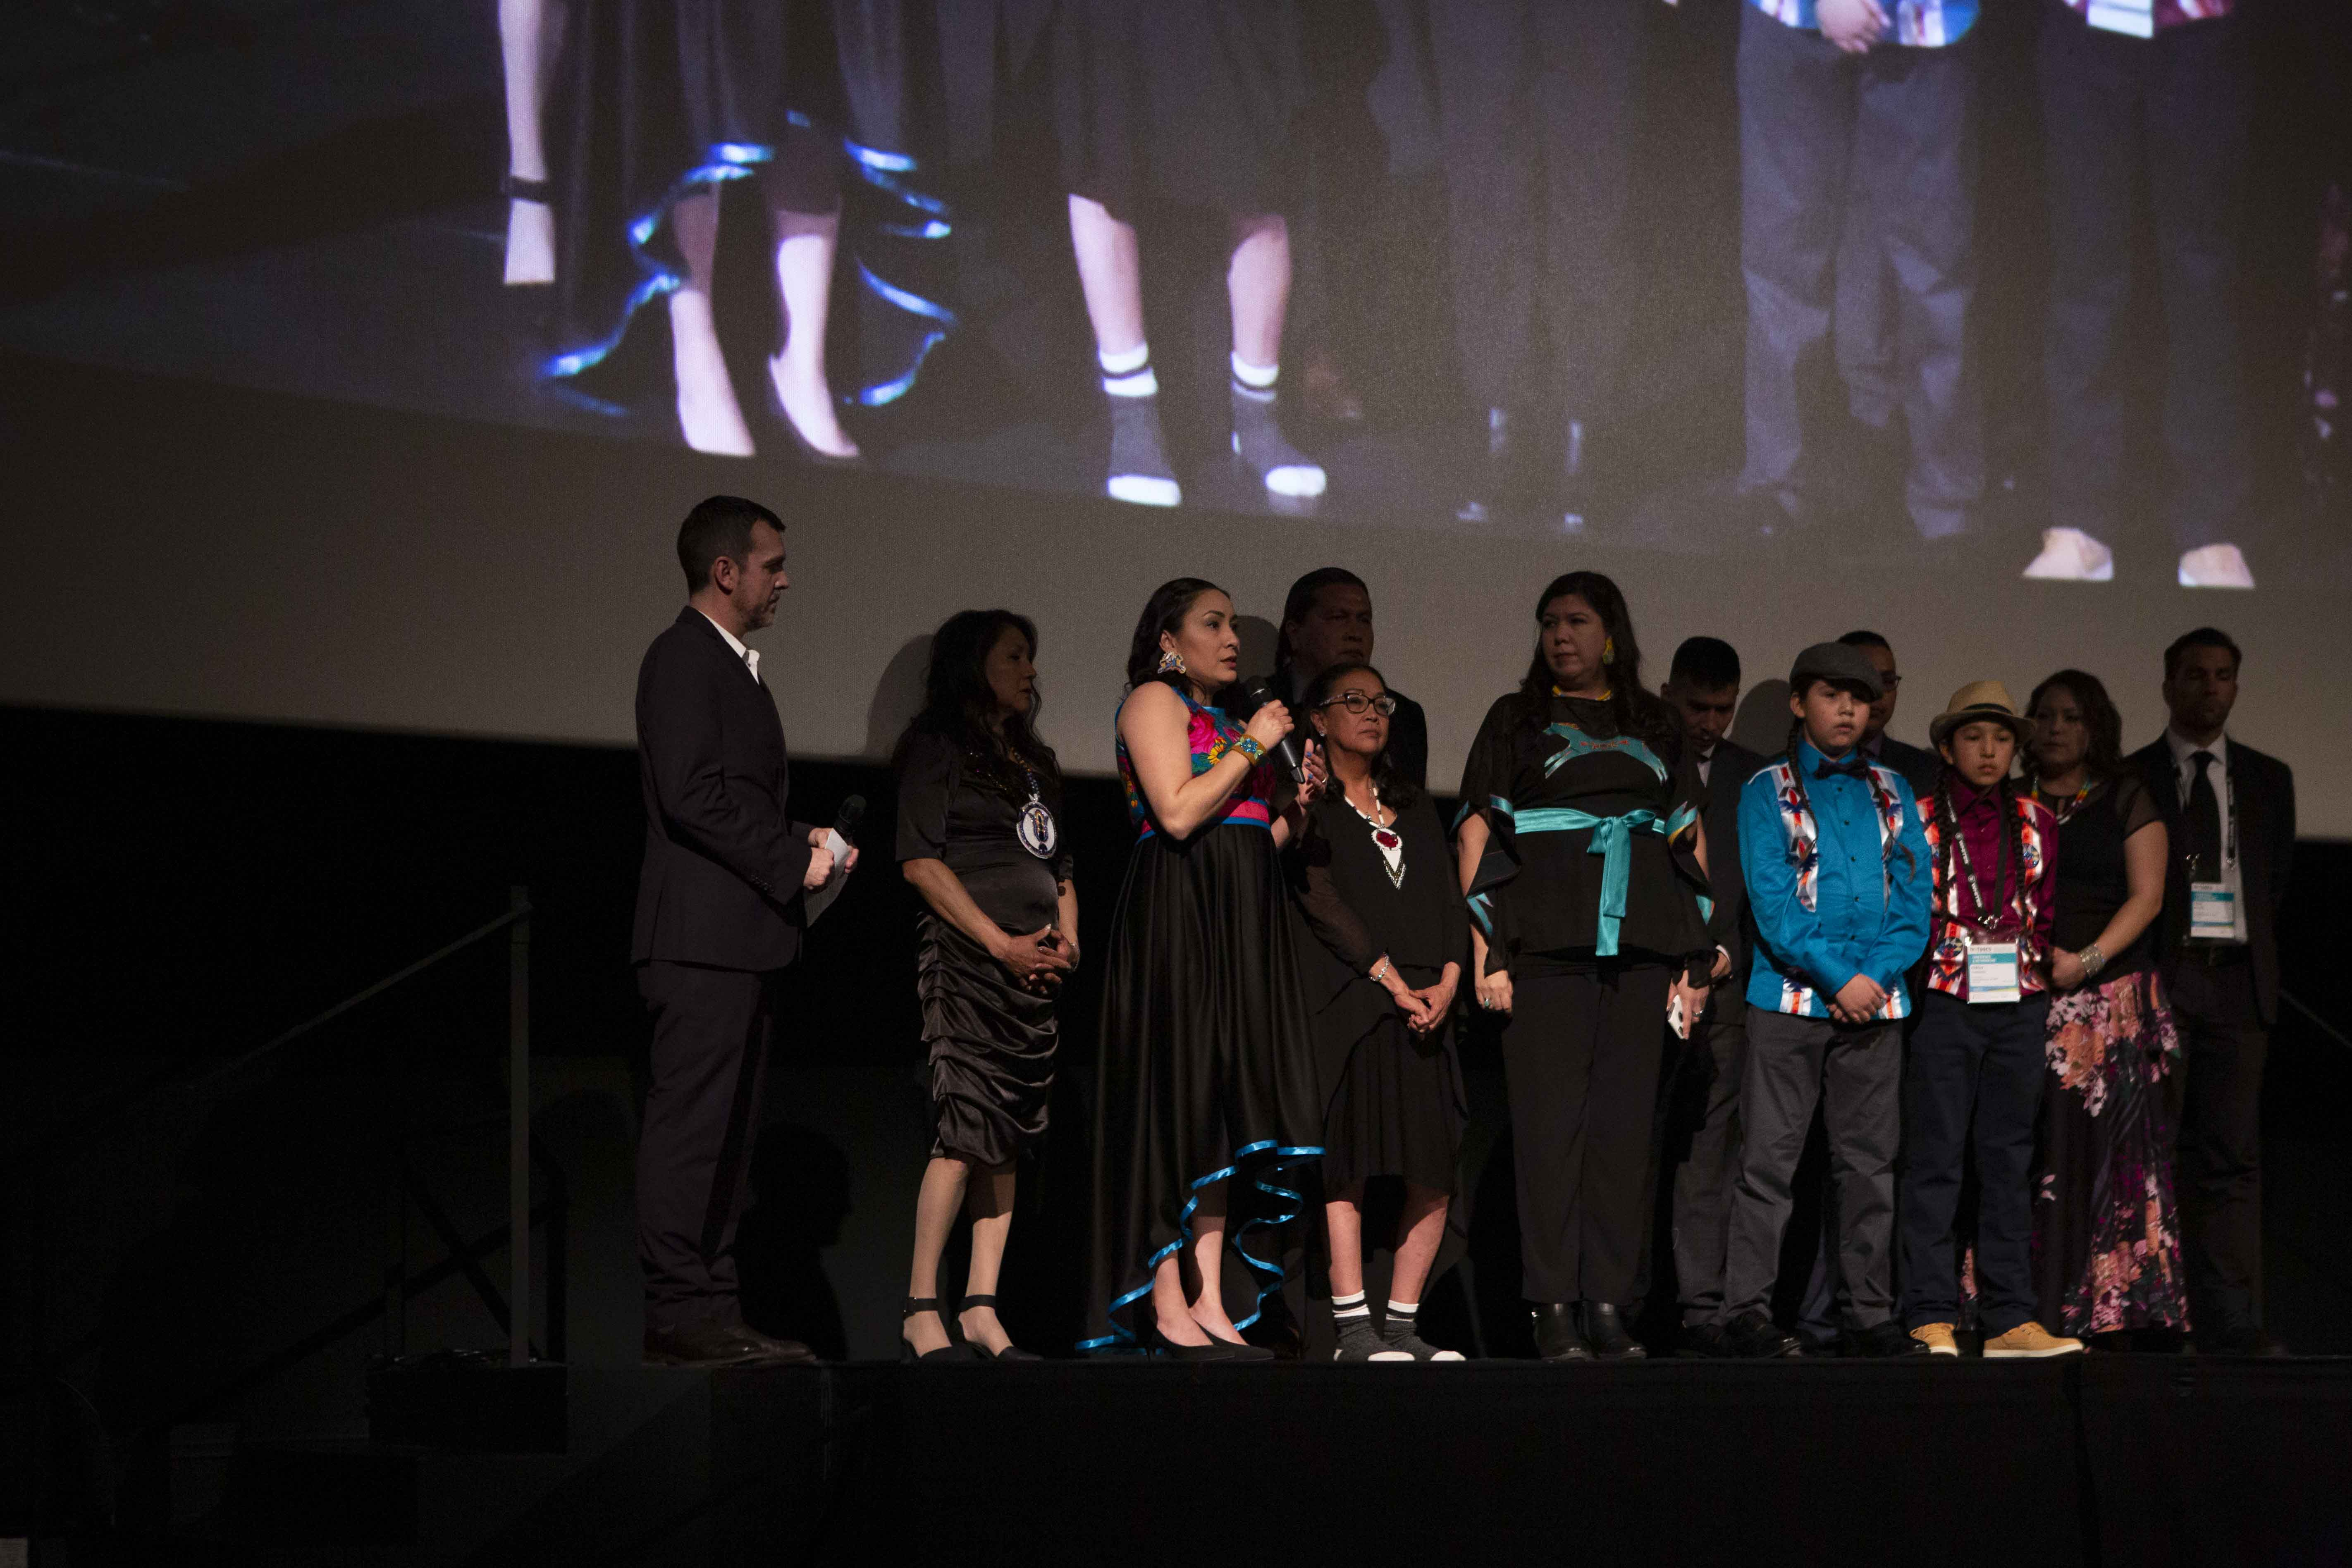 Colten Boushie's cousin, Jade Tootoosis answers a question from the audience at the HotDocs premiere of Tasha Hubbard's documentary nipawistamasowin: We Will Stand Up. (Photo by David Spowart, courtesy of Hot Docs).